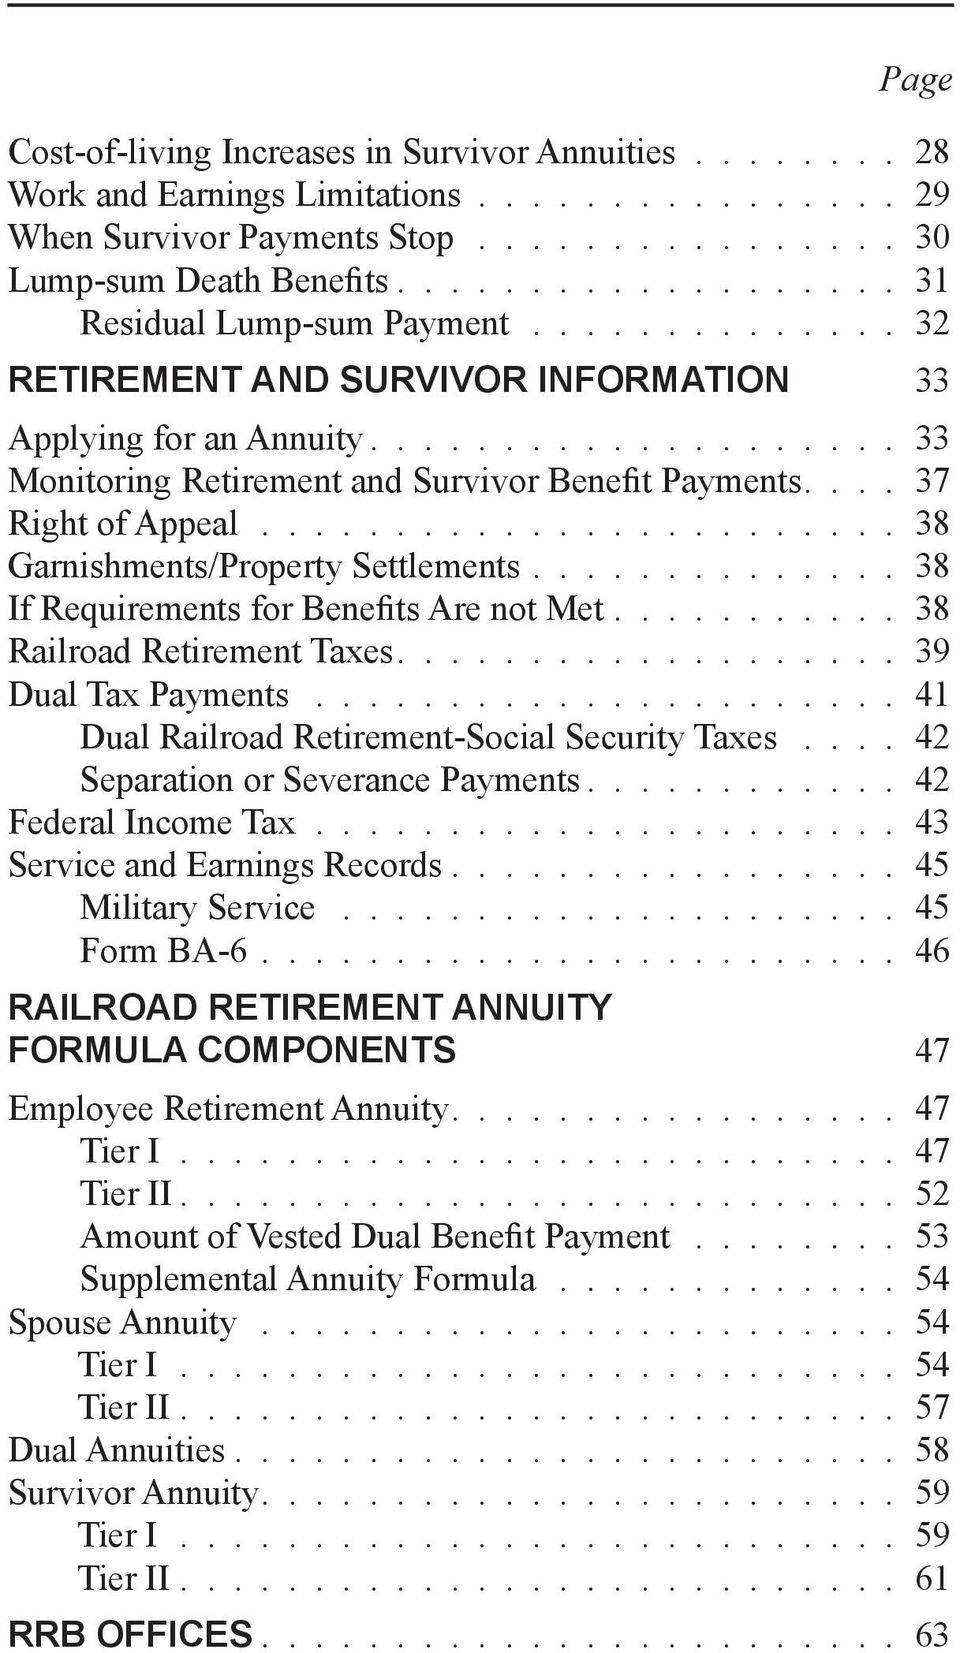 ... 37 Right of Appeal........................ 38 Garnishments/Property Settlements.............. 38 If Requirements for Benefits Are not Met........... 38 Railroad Retirement Taxes.